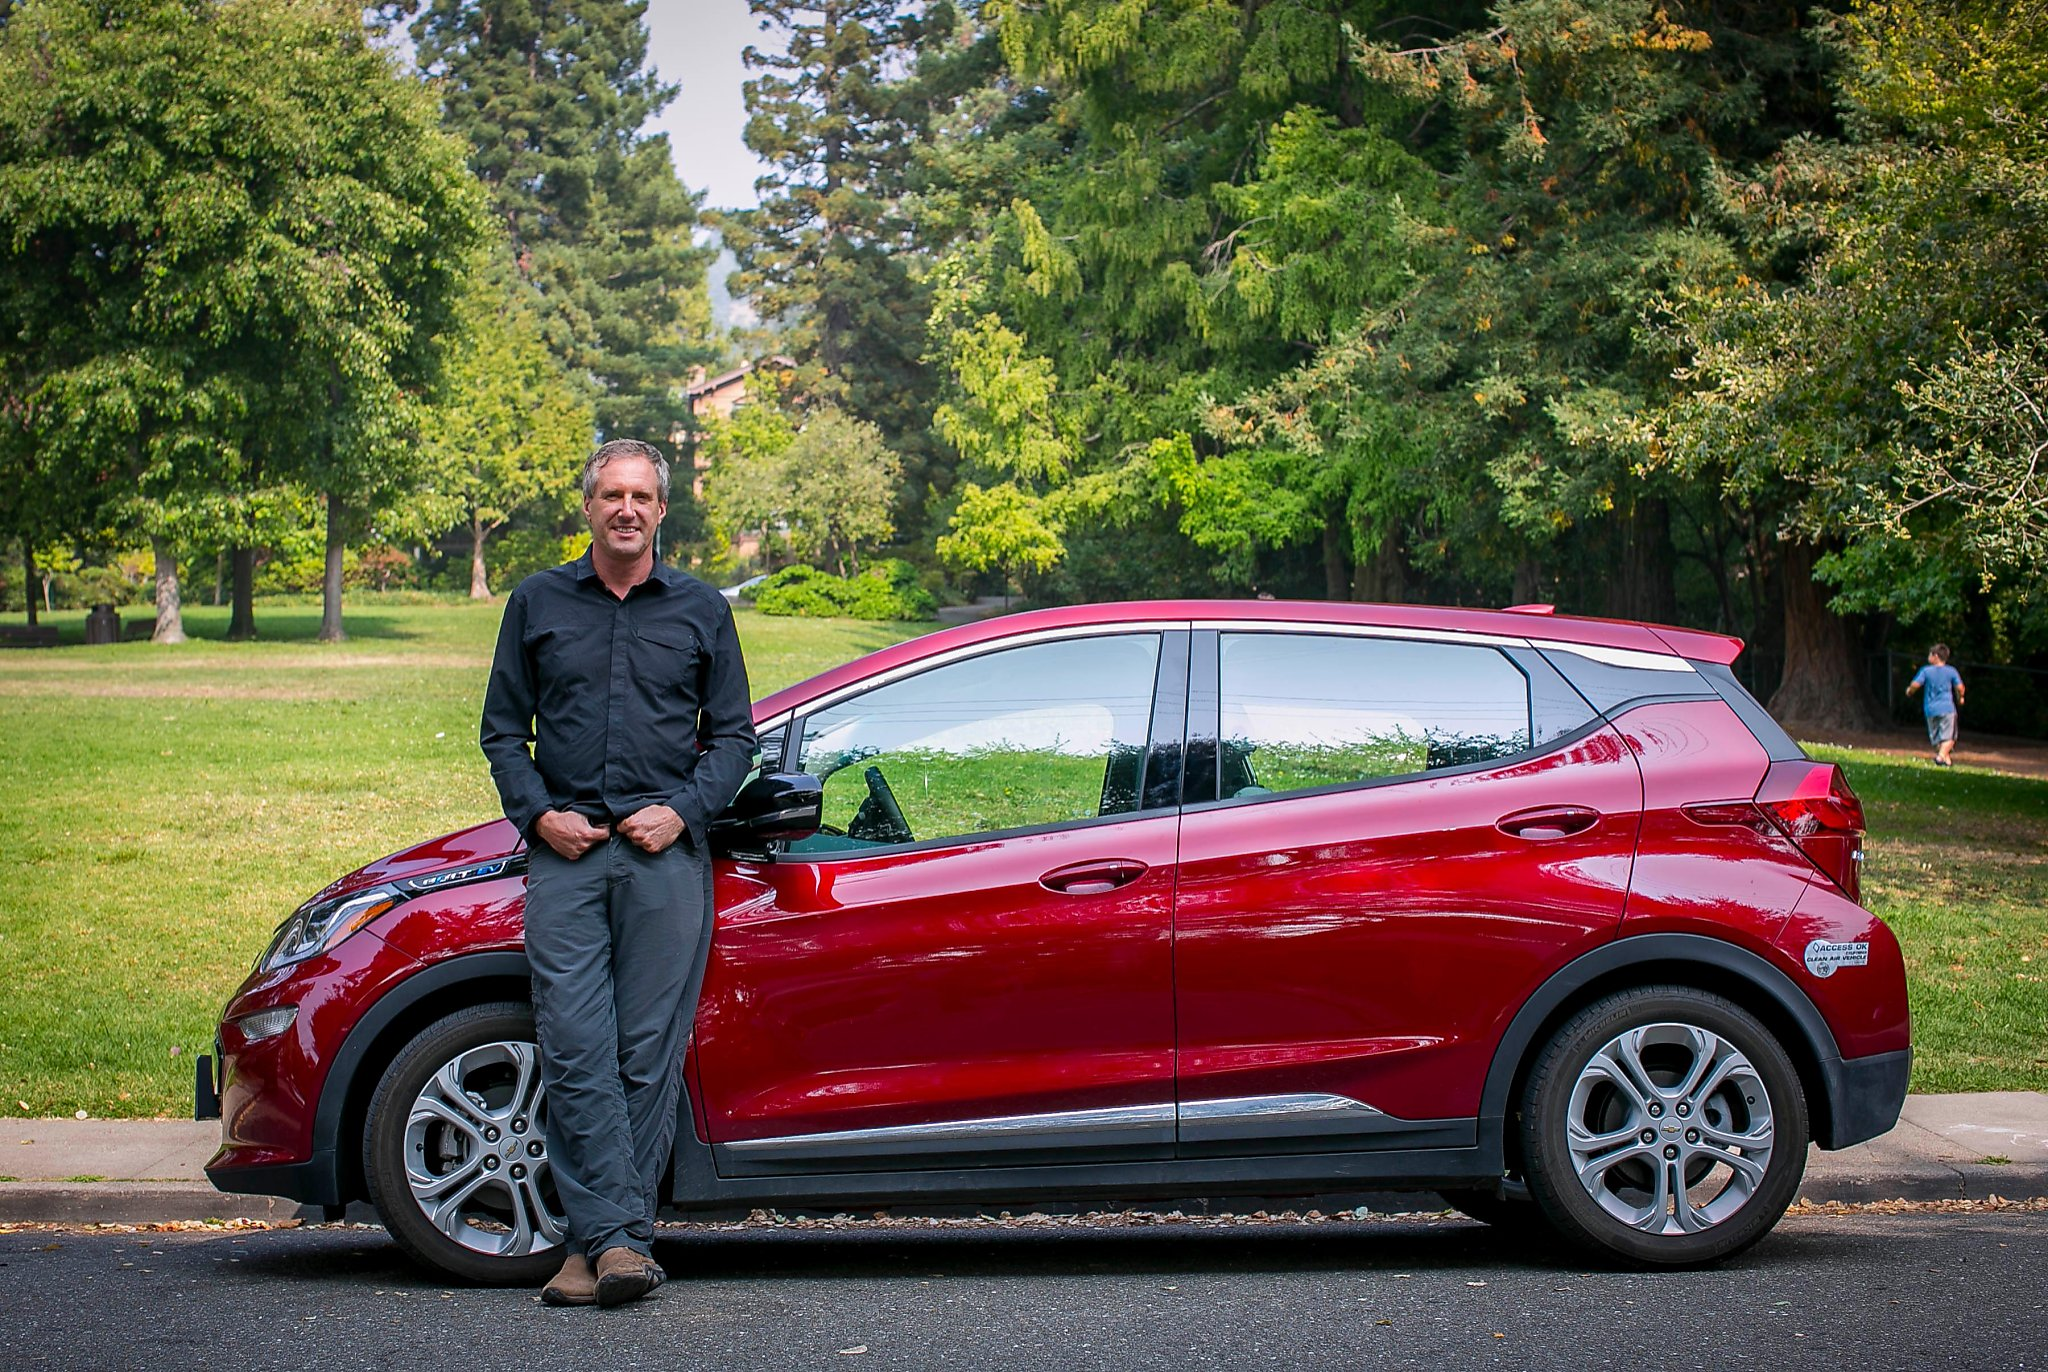 Family man feels 'right at home' in Chevy Bolt